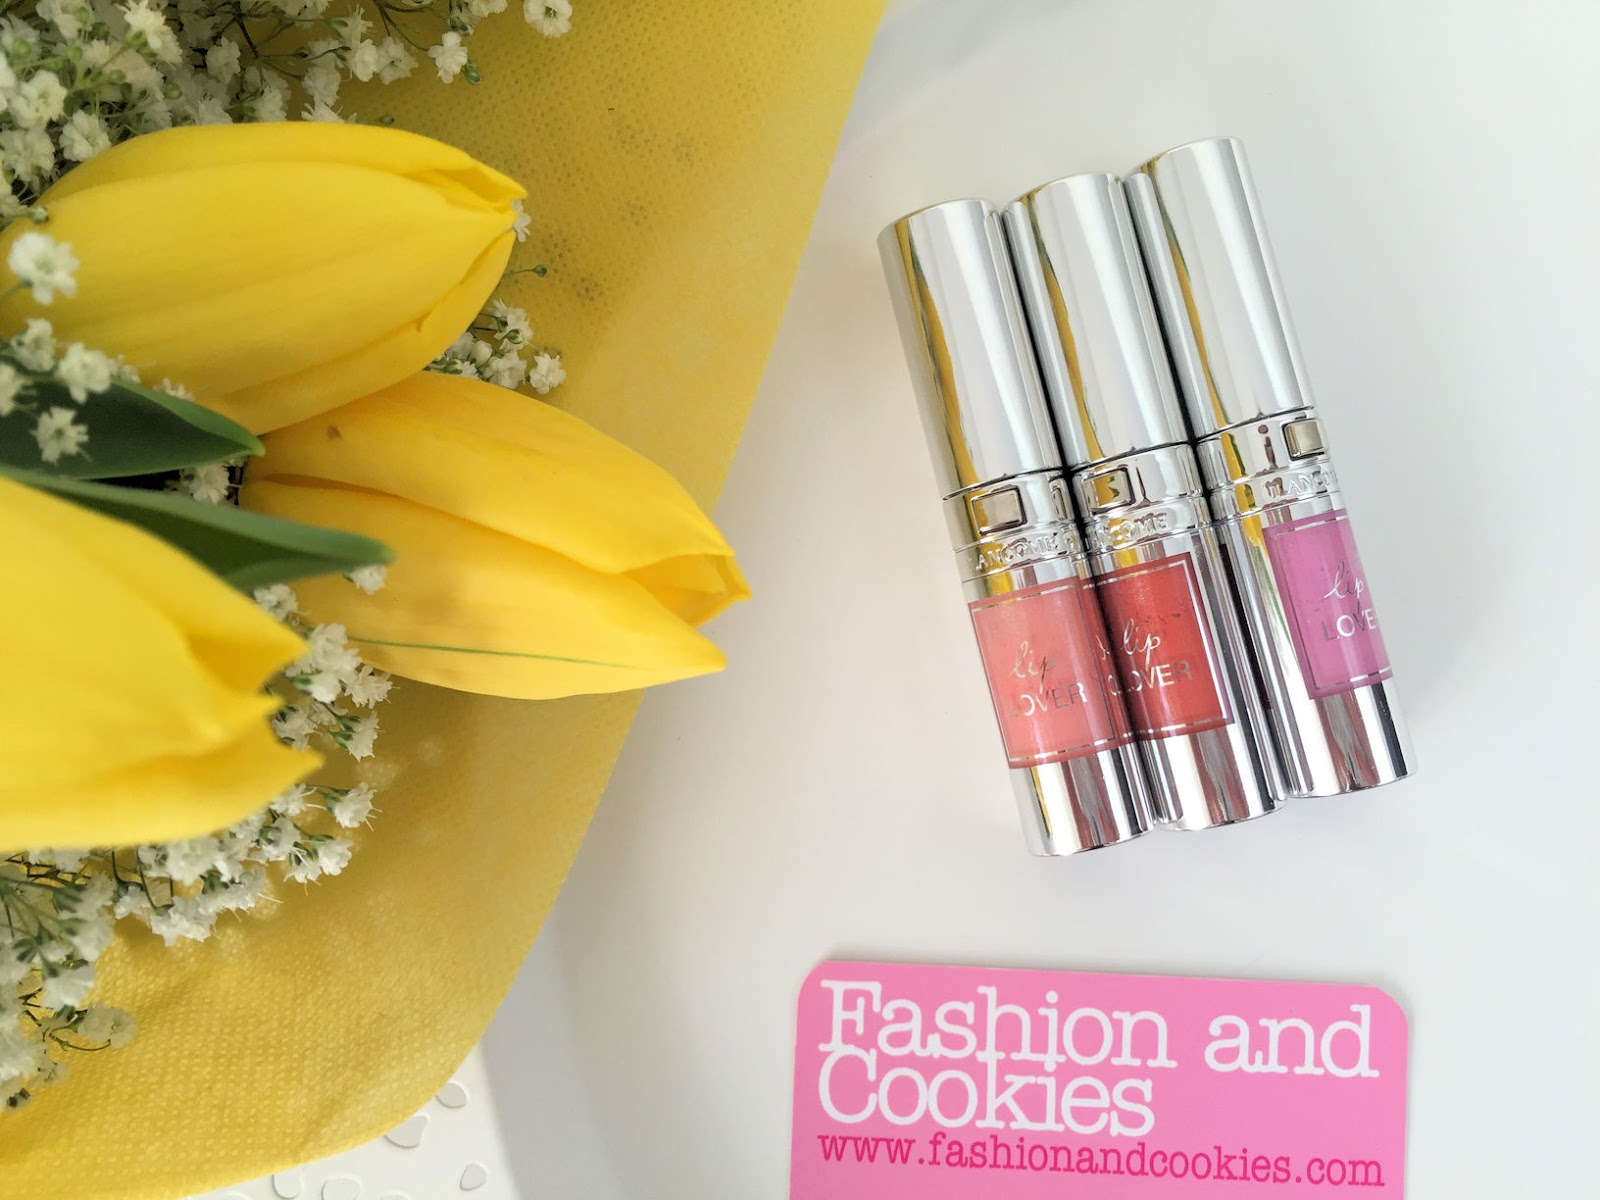 Lancôme makeup collection for Spring 2016 My Parisian Pastels lipgloss on Fashion and Cookies beauty blog, beauty blogger